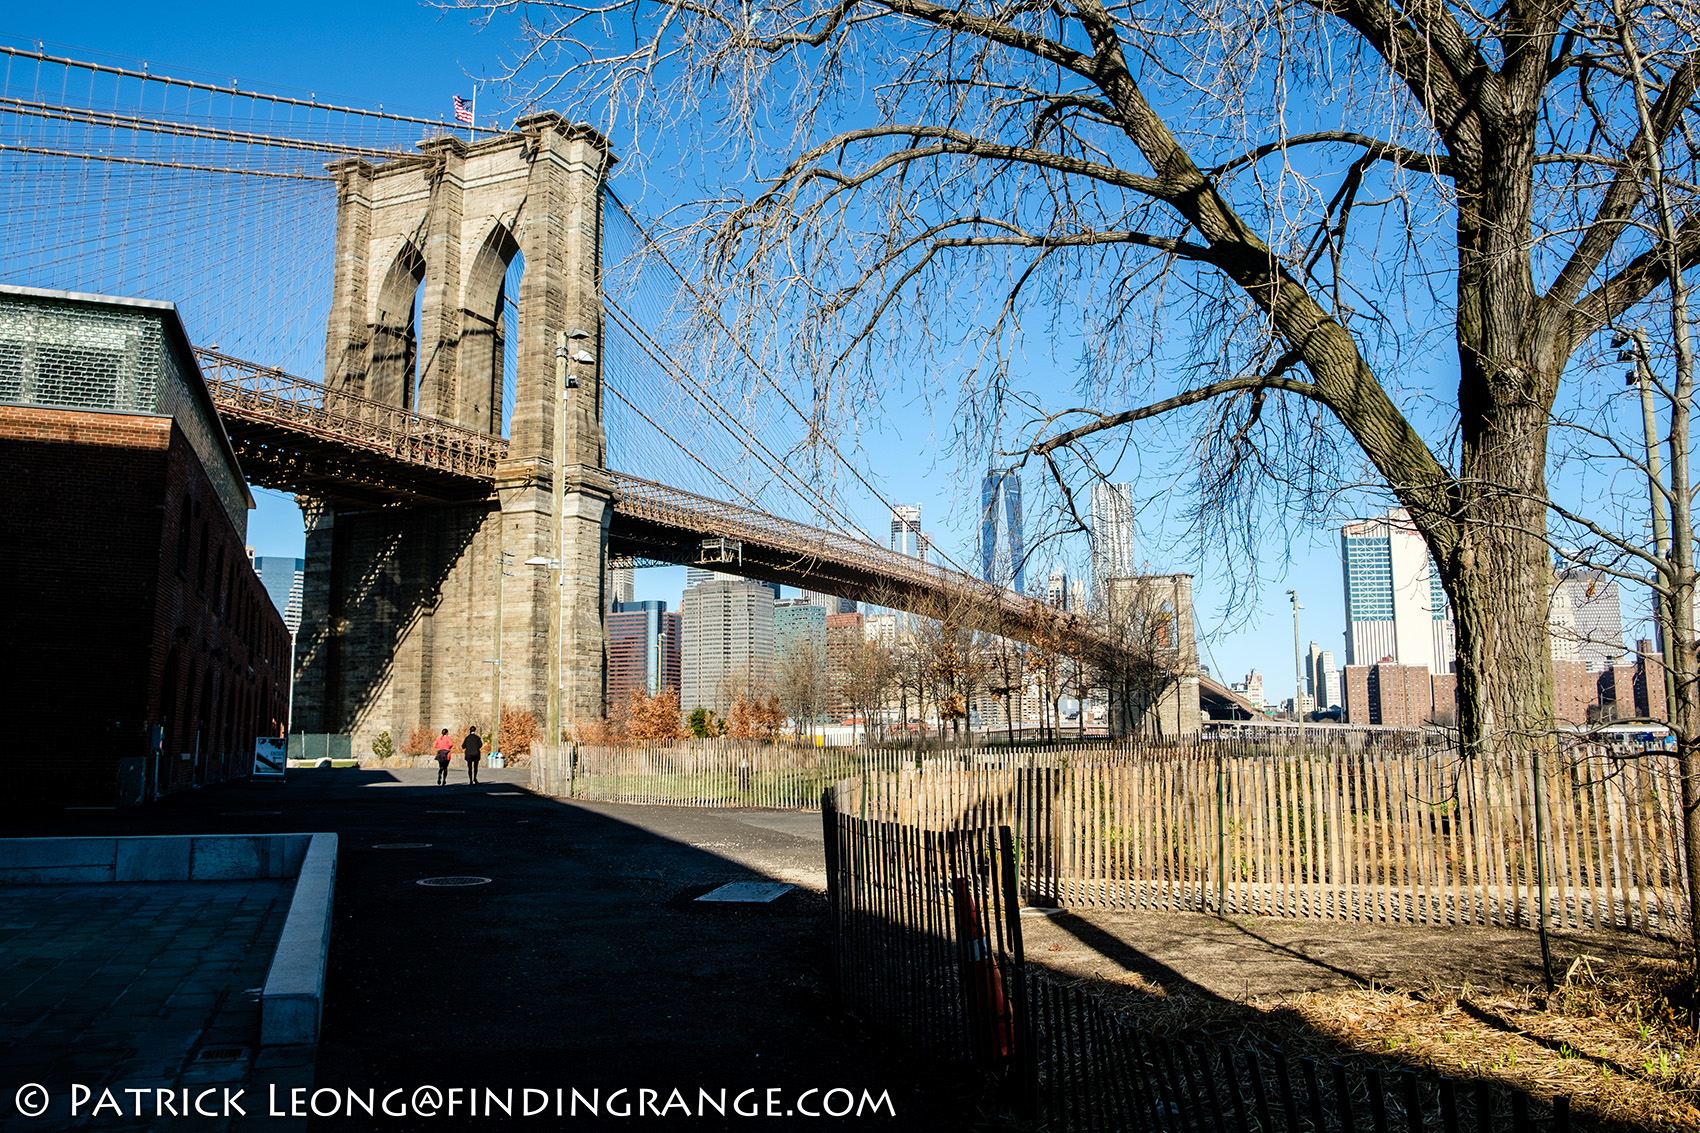 Fuji-X-T20-XF-18-55mm-f2.8-4-R-LM-OIS-Lens-Dumbo-Brooklyn-Bridge